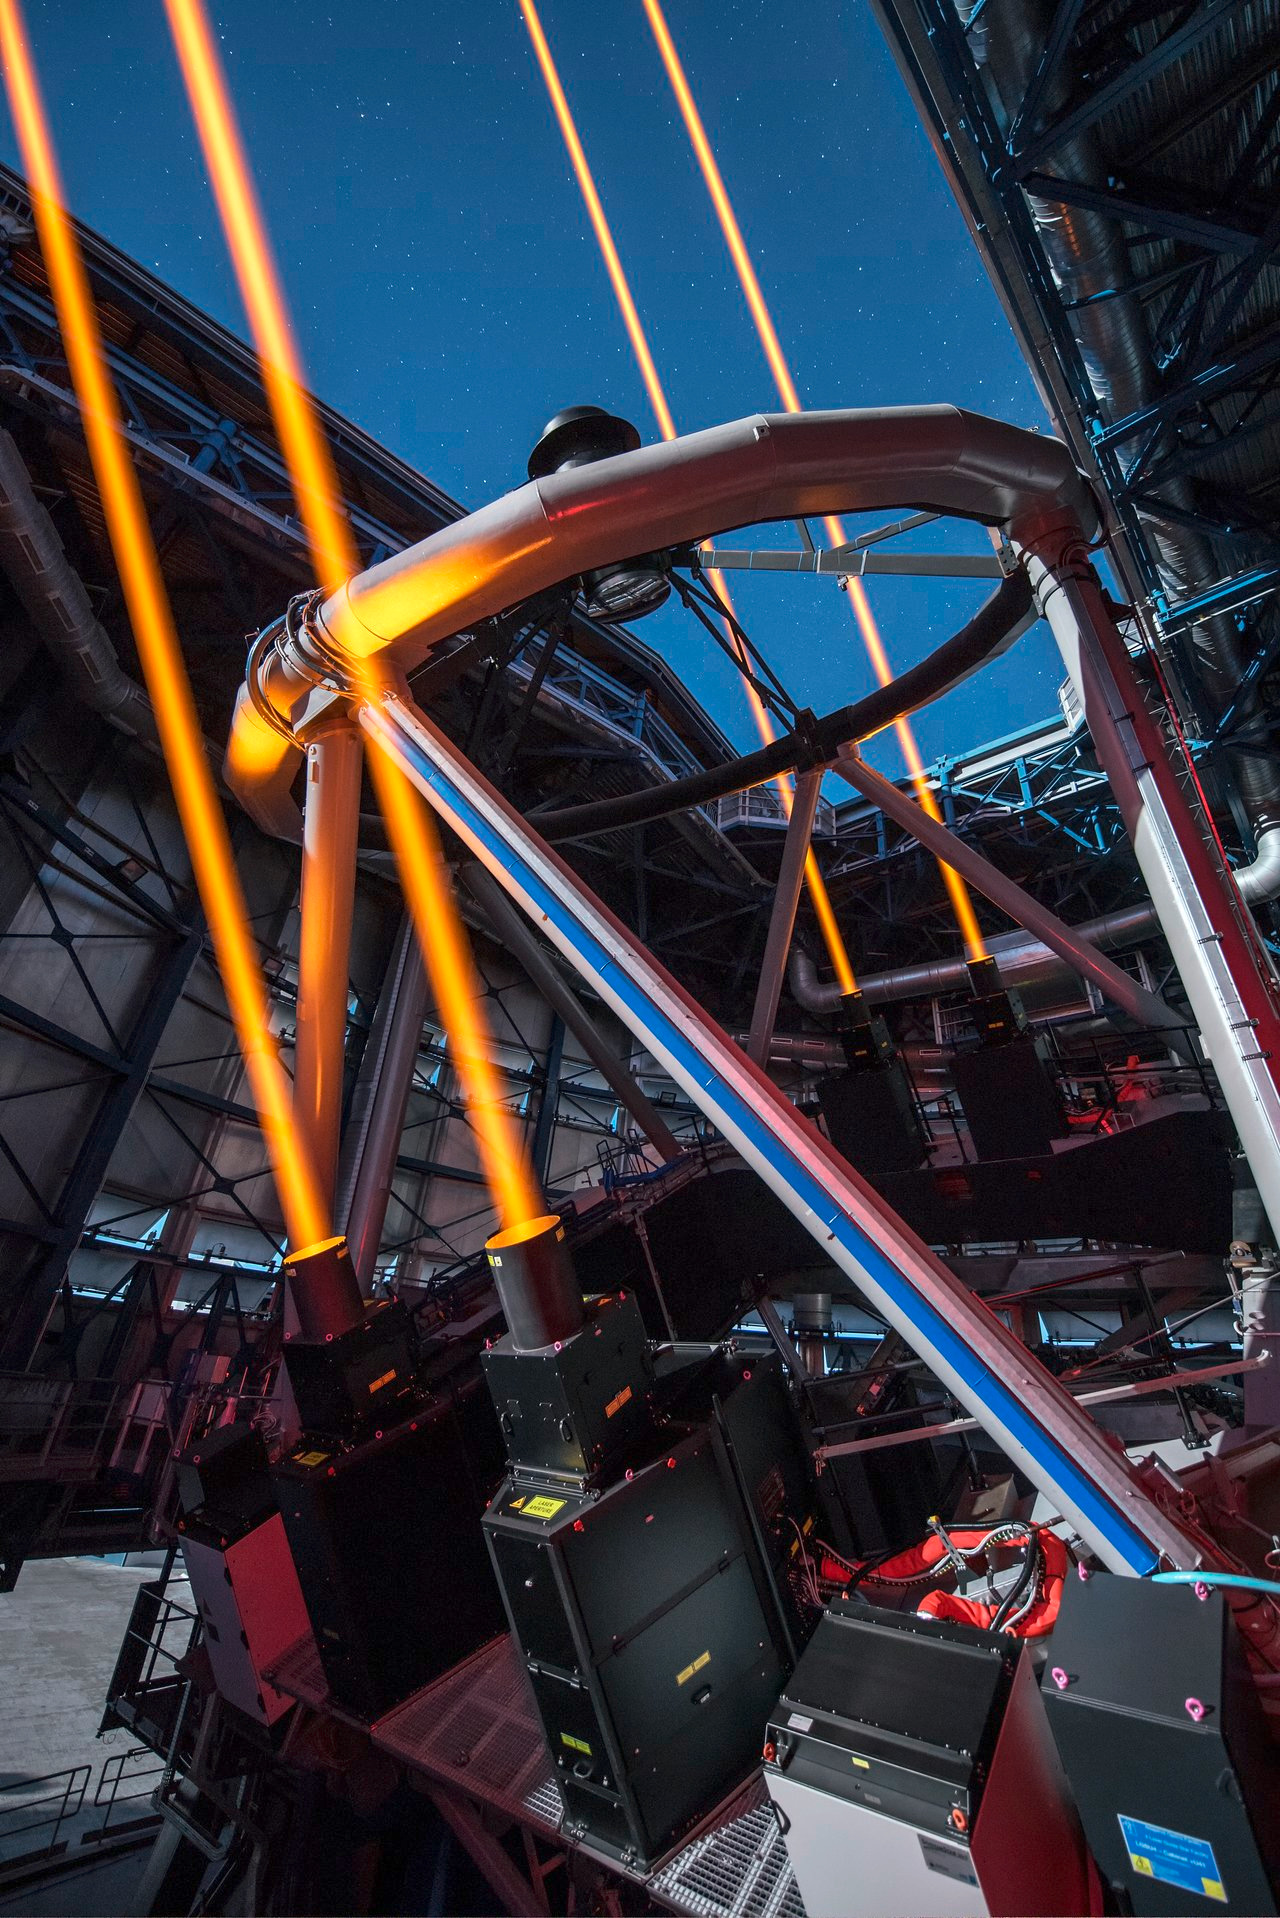 This image shows the four 30-centimetre diameter, 22-watt beams emerging from the new 589nm laser system on Unit Telescope 4 of the VLT. Image credit: ESO/G. Hüdepohl.